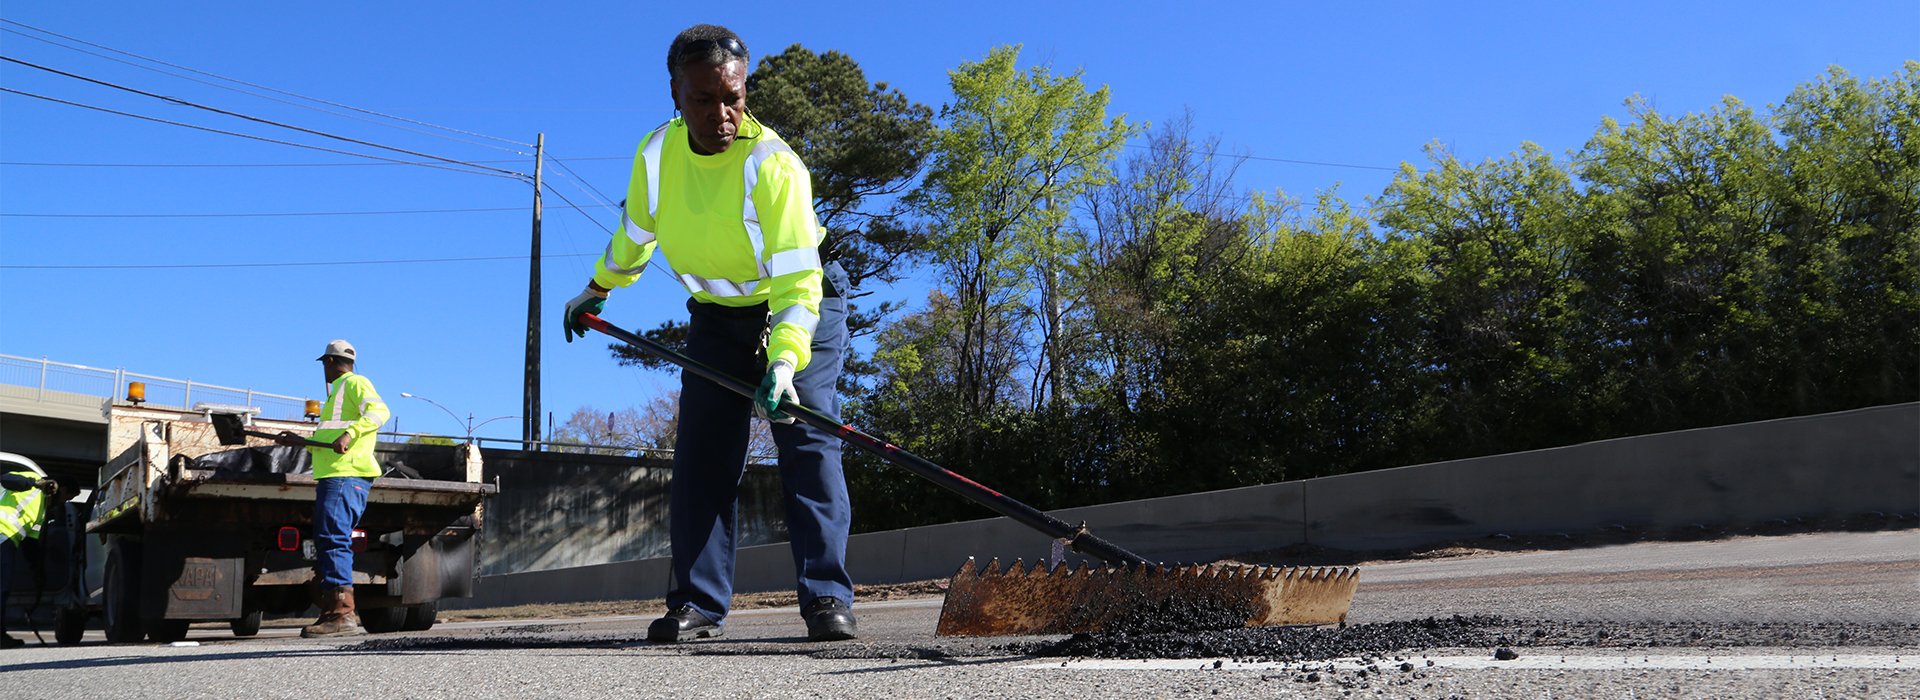 Work zone safety is everyone's responsibility